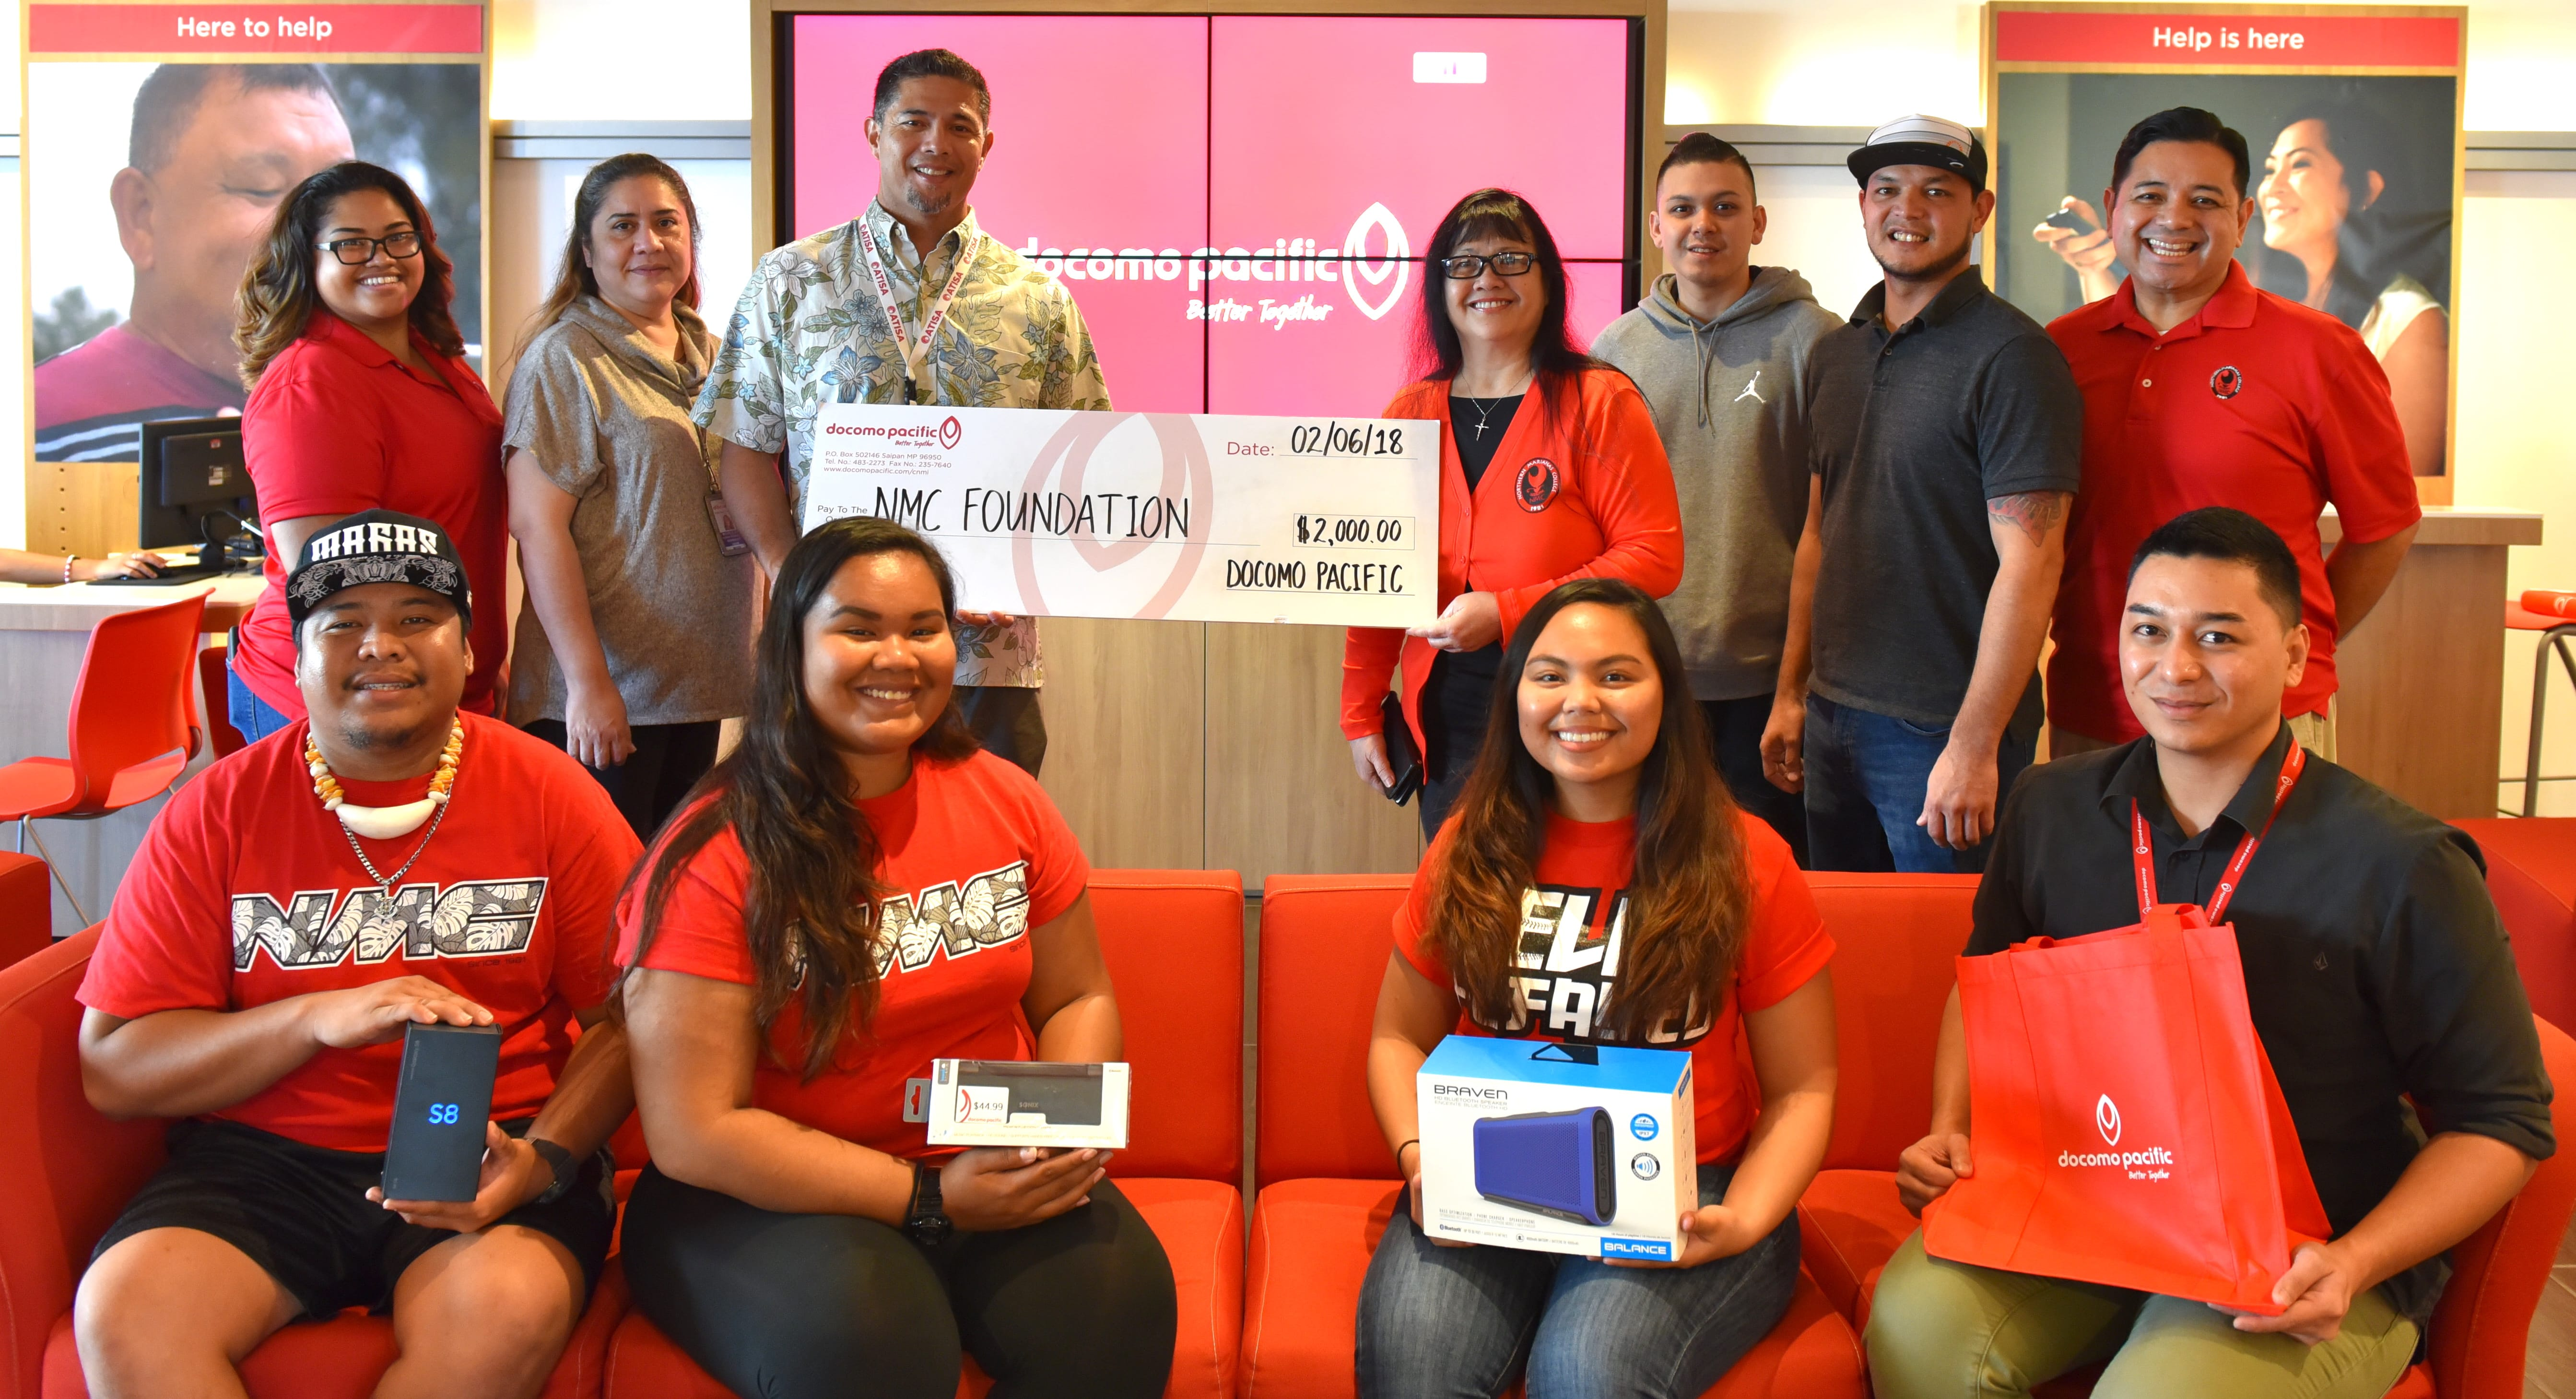 Docomo Pacific recently donated $3,000 in cash and prizes that will be featured at the upcoming annual NMC Foundation Golf Tournament on Saturday, March 3, 2018. In the photo are Docomo employees, led by Docomo Pacific Vice President Dino Manning (back row 3rd from left) and NMC staff and students, led by NMC President Dr. Carmen Fernandez (back row 4th from right).